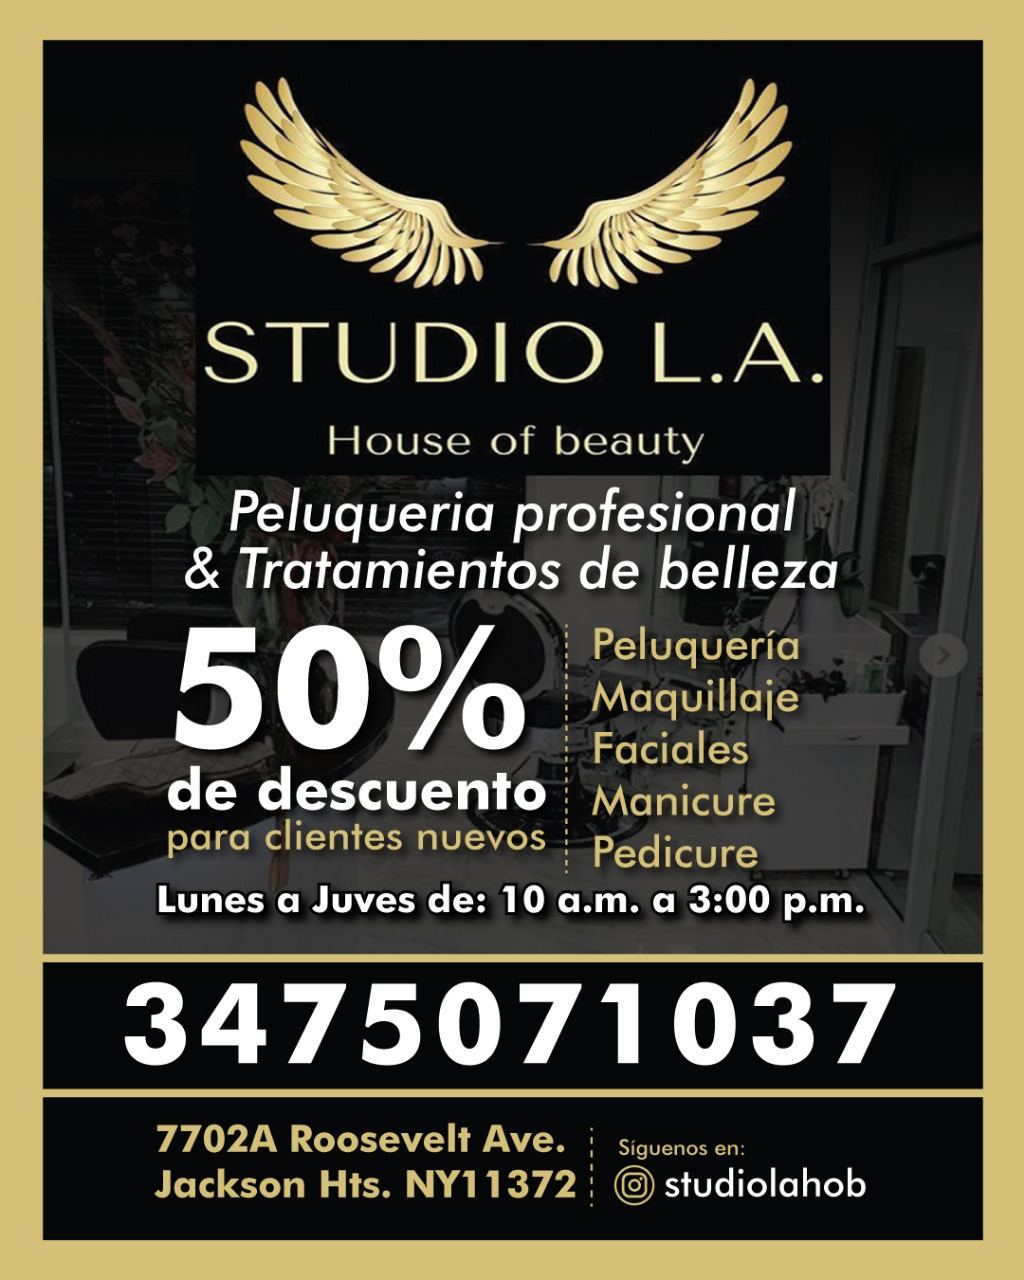 STUDIO LA